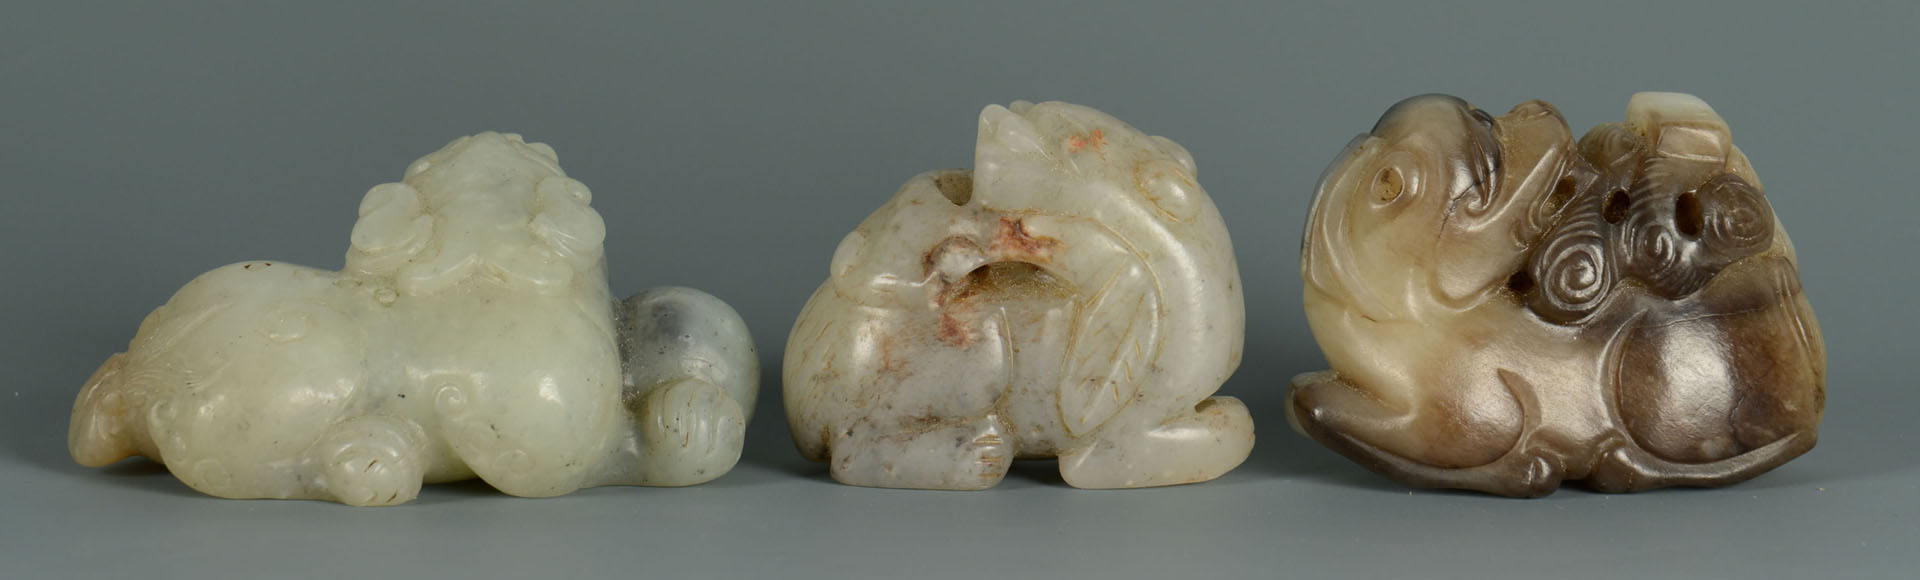 Lot 12: Group of 3 Celadon Jade Foo Dogs